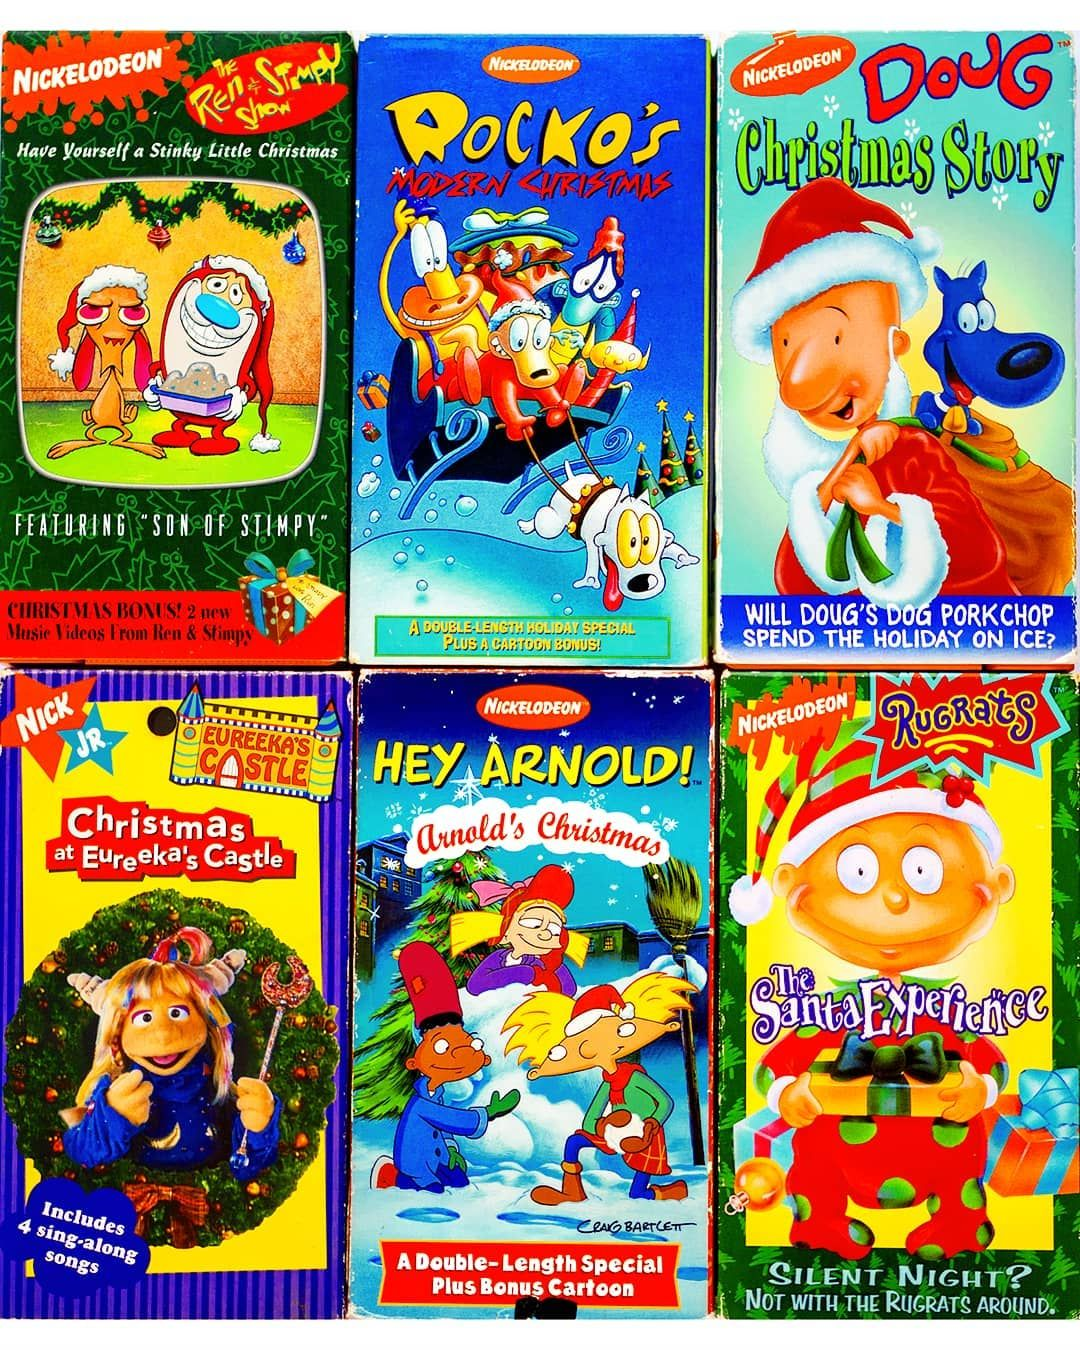 Best Christmas Specials.Nickmas Vhs Tapes Nickelodeon Always Brought Some Of